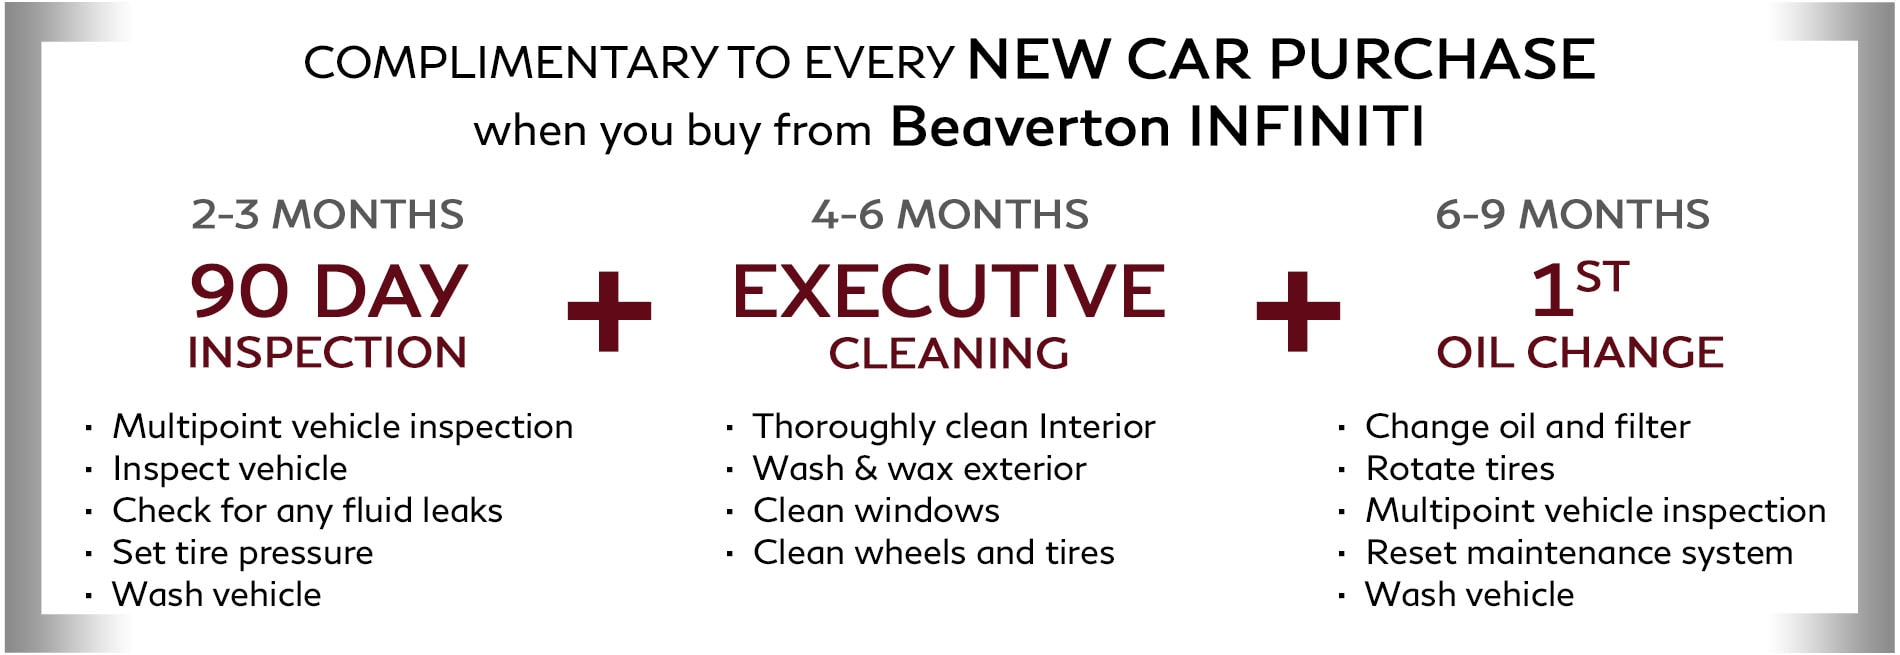 Complimentary with every new INFINITI purchase: Receive a 90 day inspection after 2-3 months of ownership, an executive reclean after 4-6 months of ownership, and your first oil change after 6-9 months ofownership. Only available at Beaverton INFINITI.